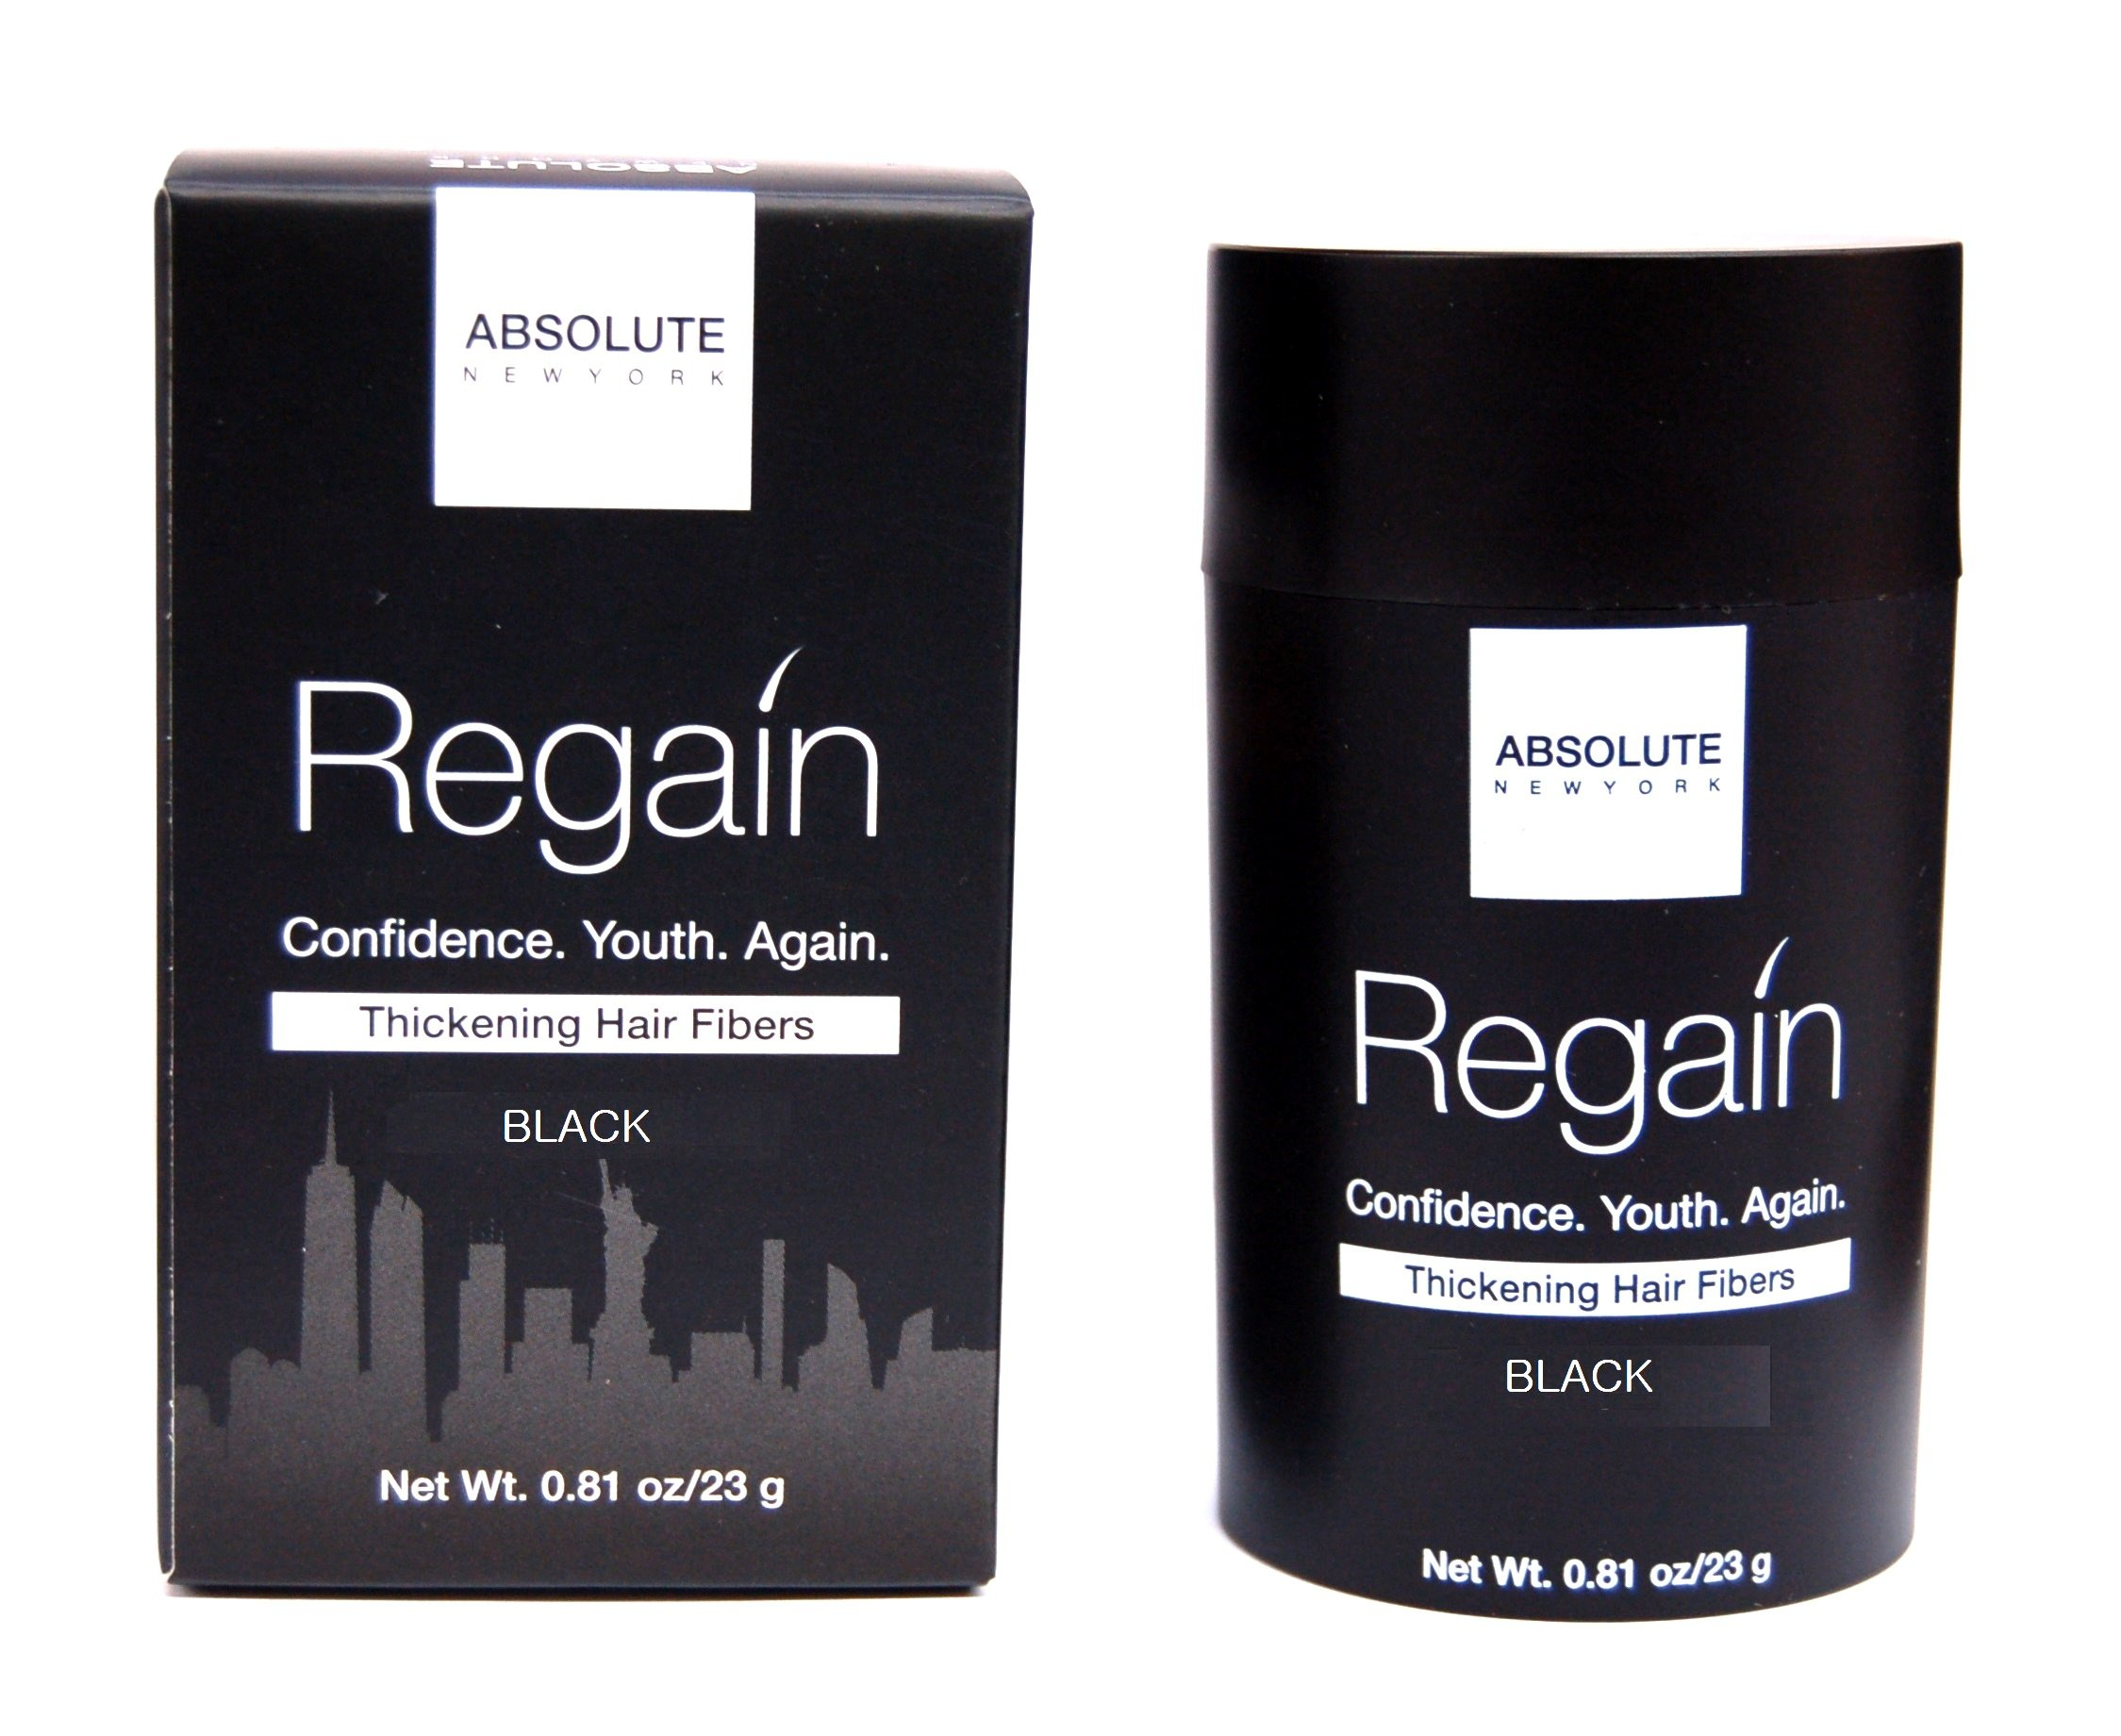 Regain Hair Fibers by Absolute 0.81oz / 23g (Black)